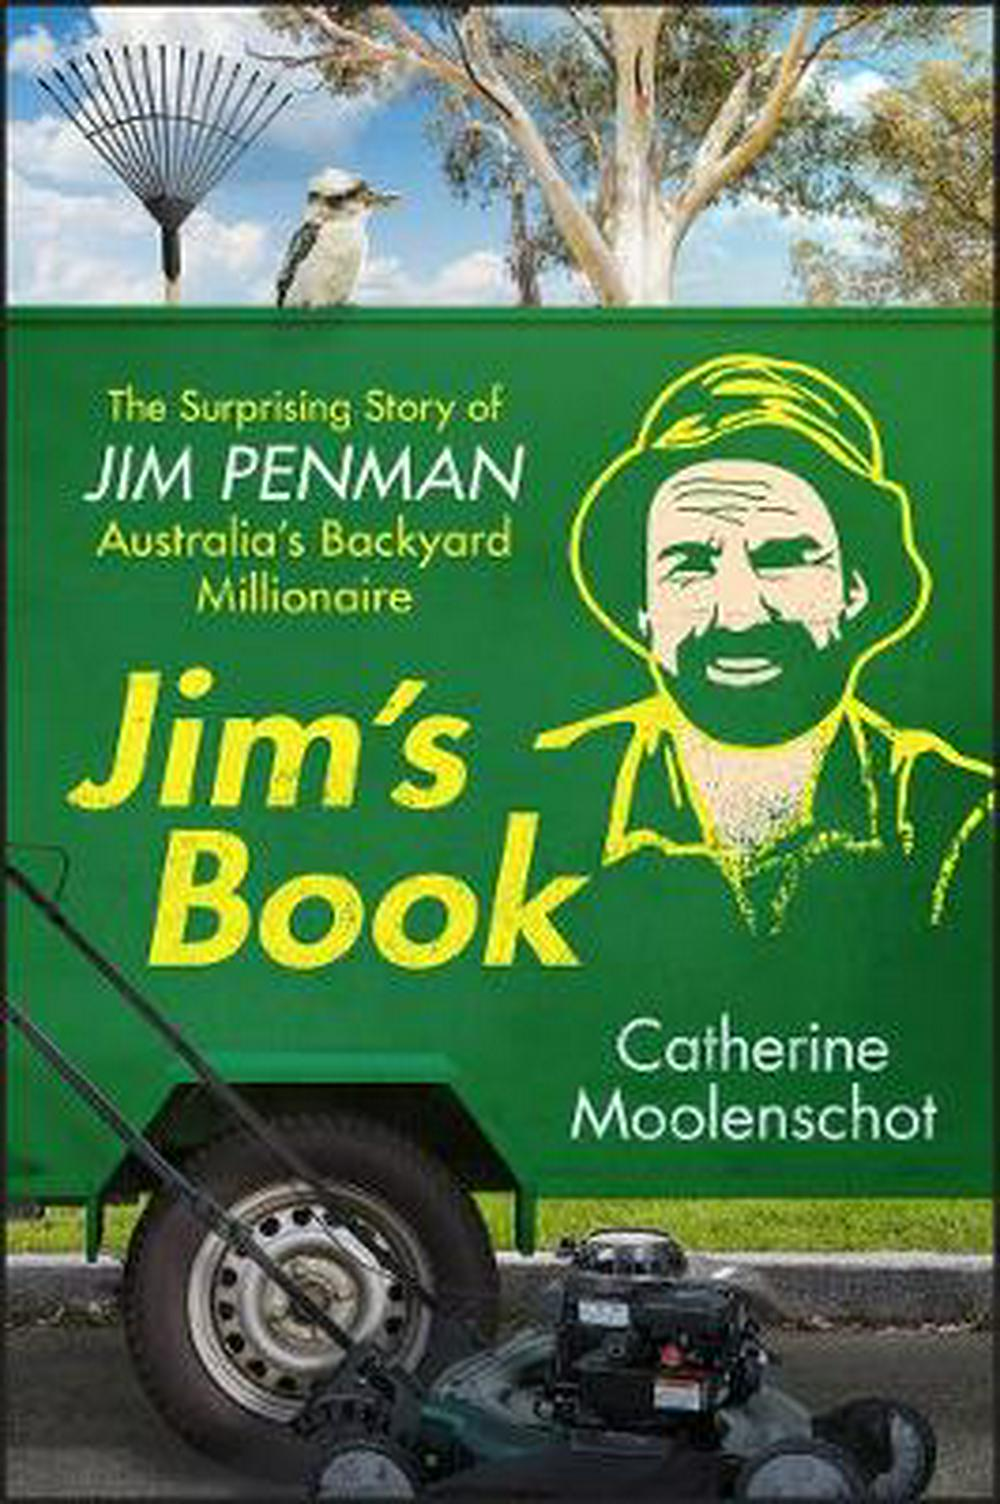 Jim's Book: The Surprising Story of Australia's Backyard Millionaire